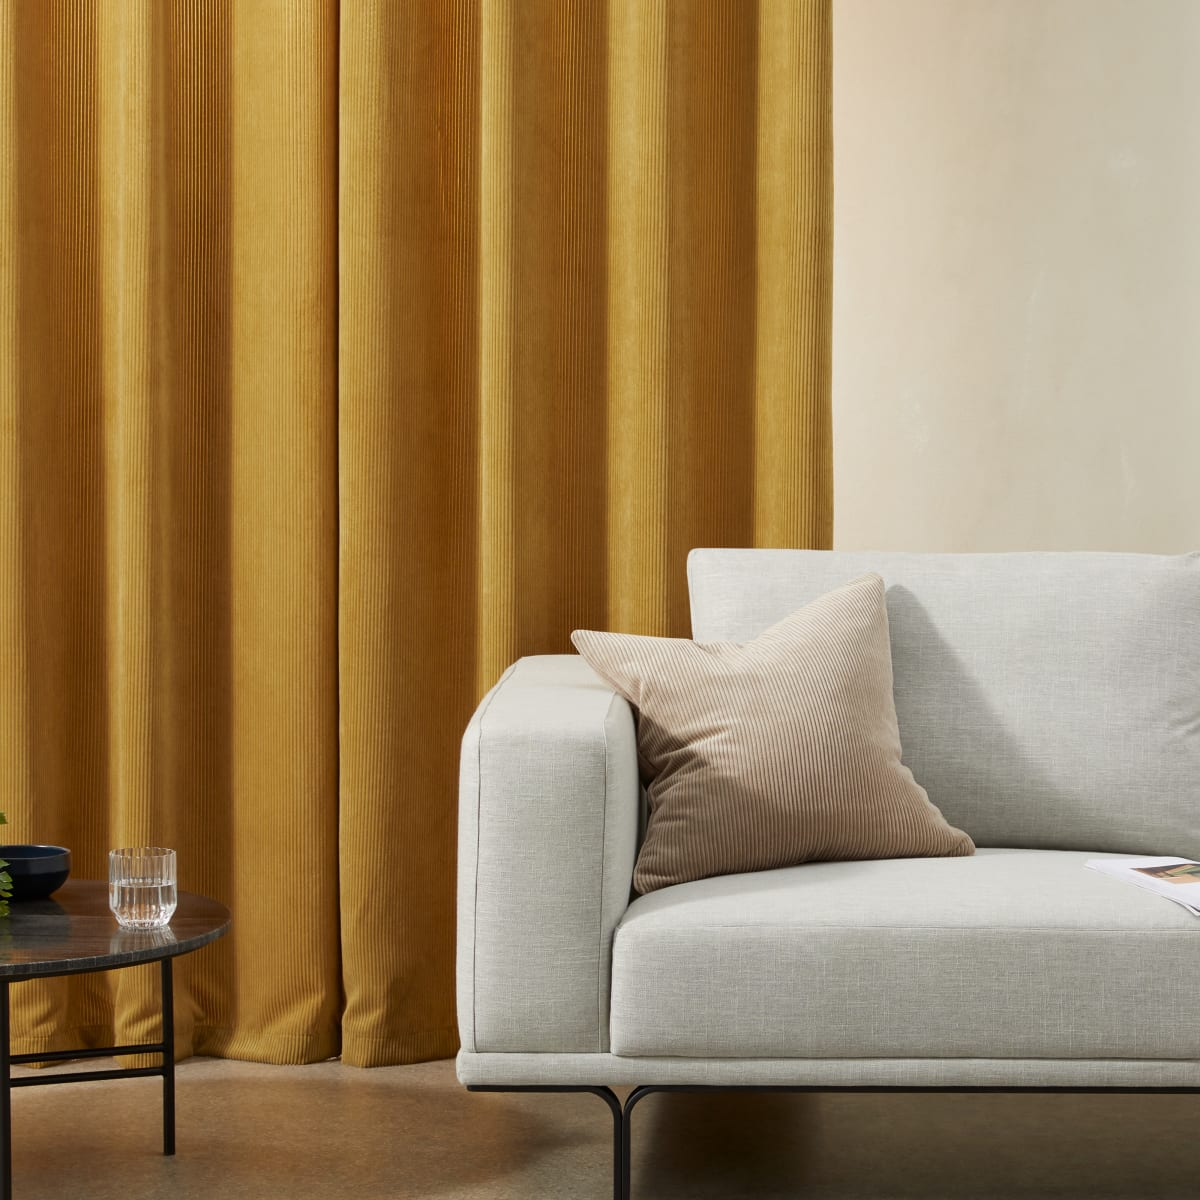 Selky-Corduroy-Eyelet-Pair-of-Curtains-140-x-260cm-Mustard-Yellow_27133932653